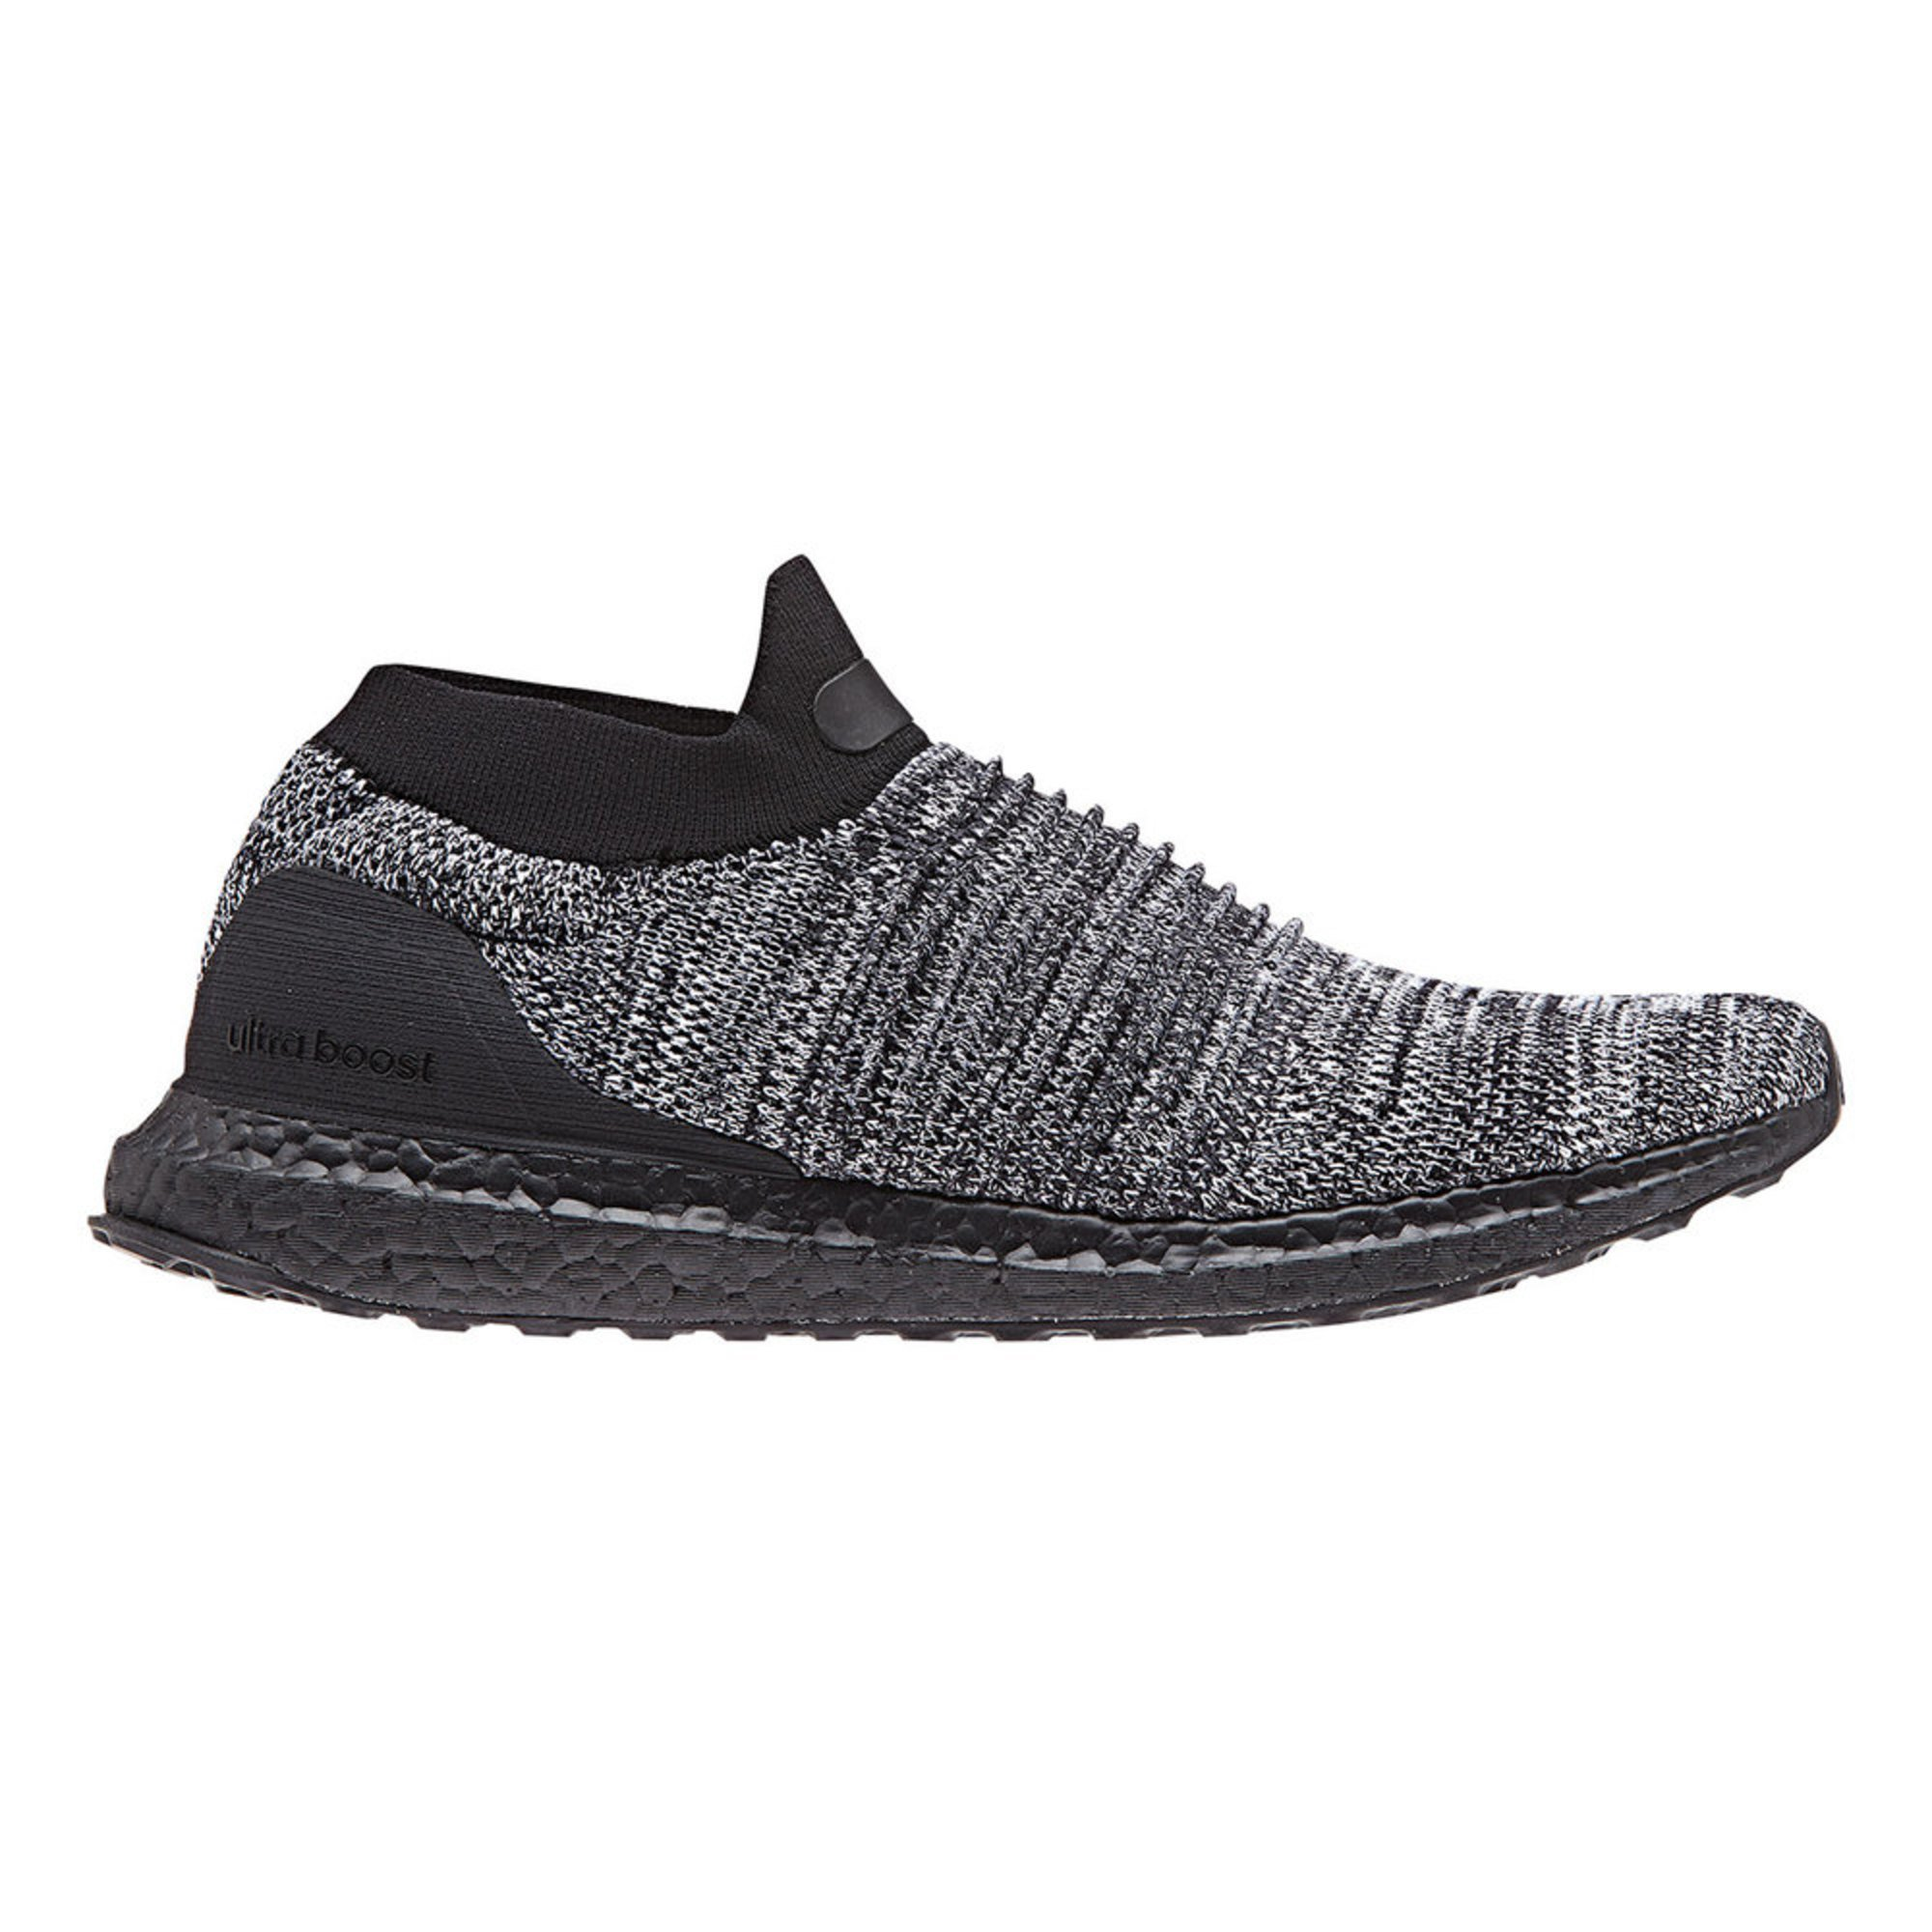 low priced a30ef a761d Ultraboost Shoes Laceless Men s Running Adidas Shoe f54PU5x